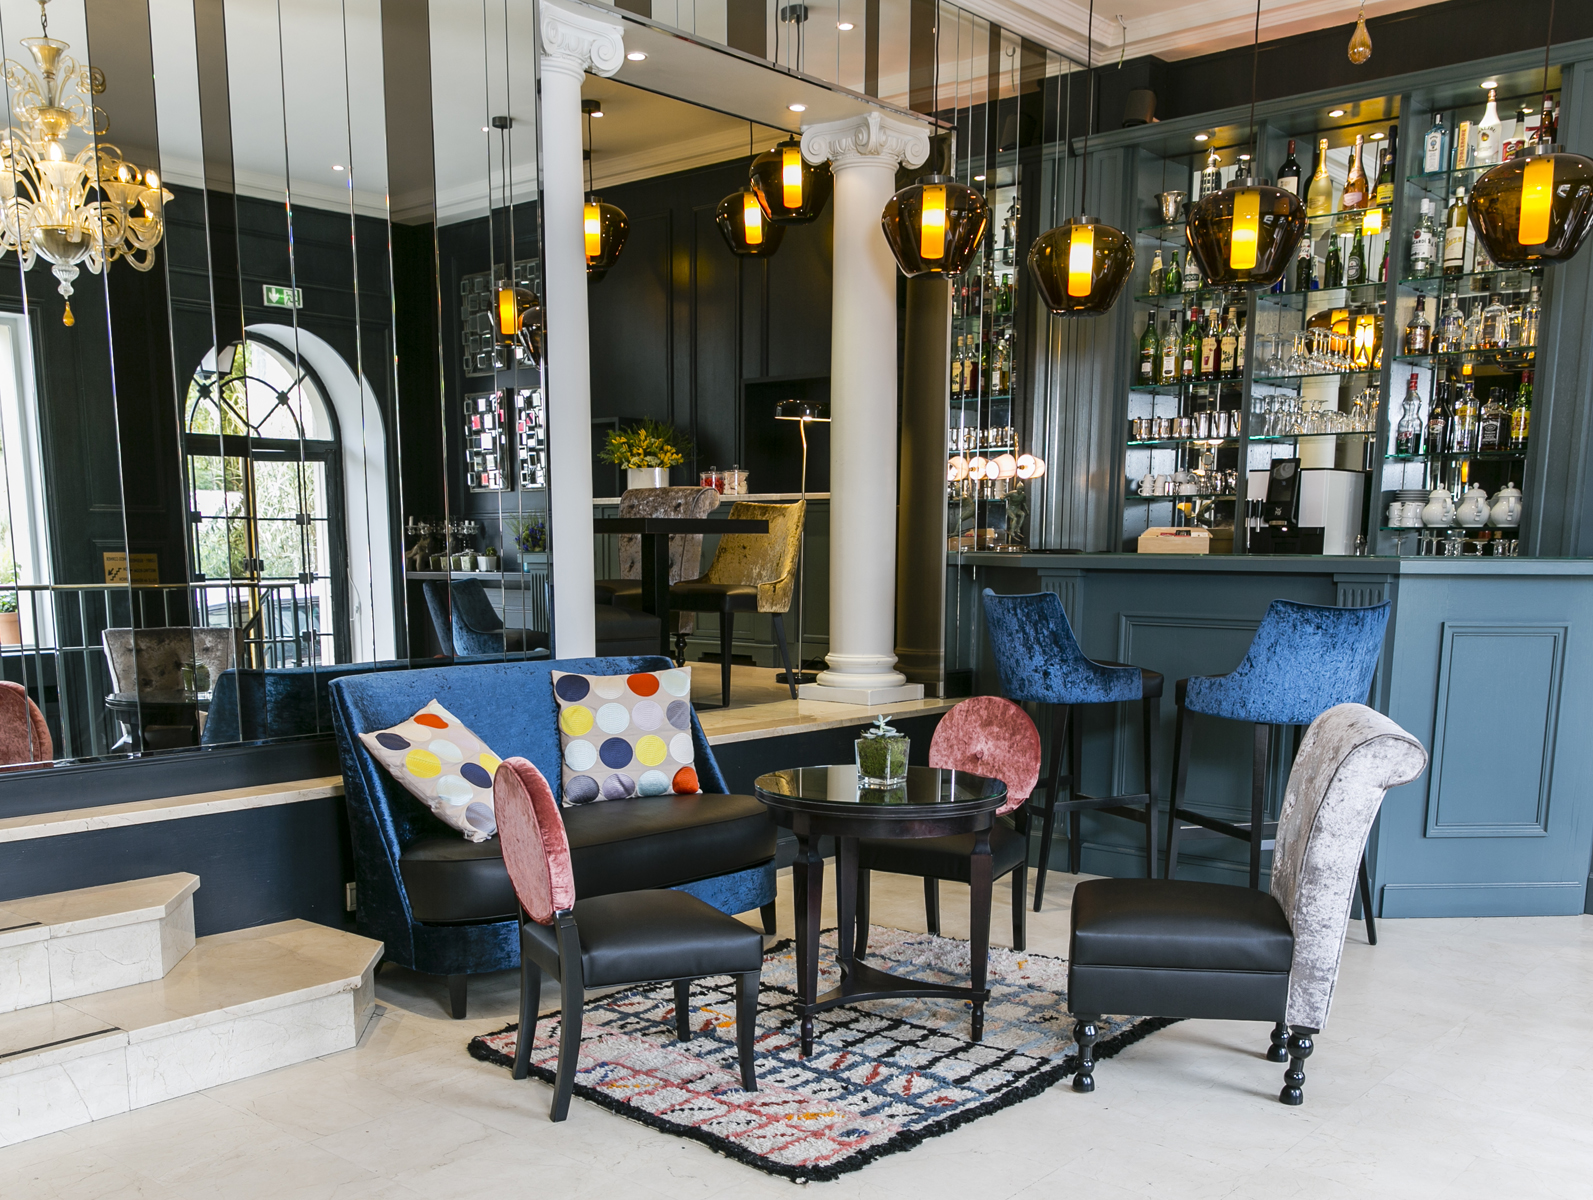 Best Western Plus de Neuville bar lounge